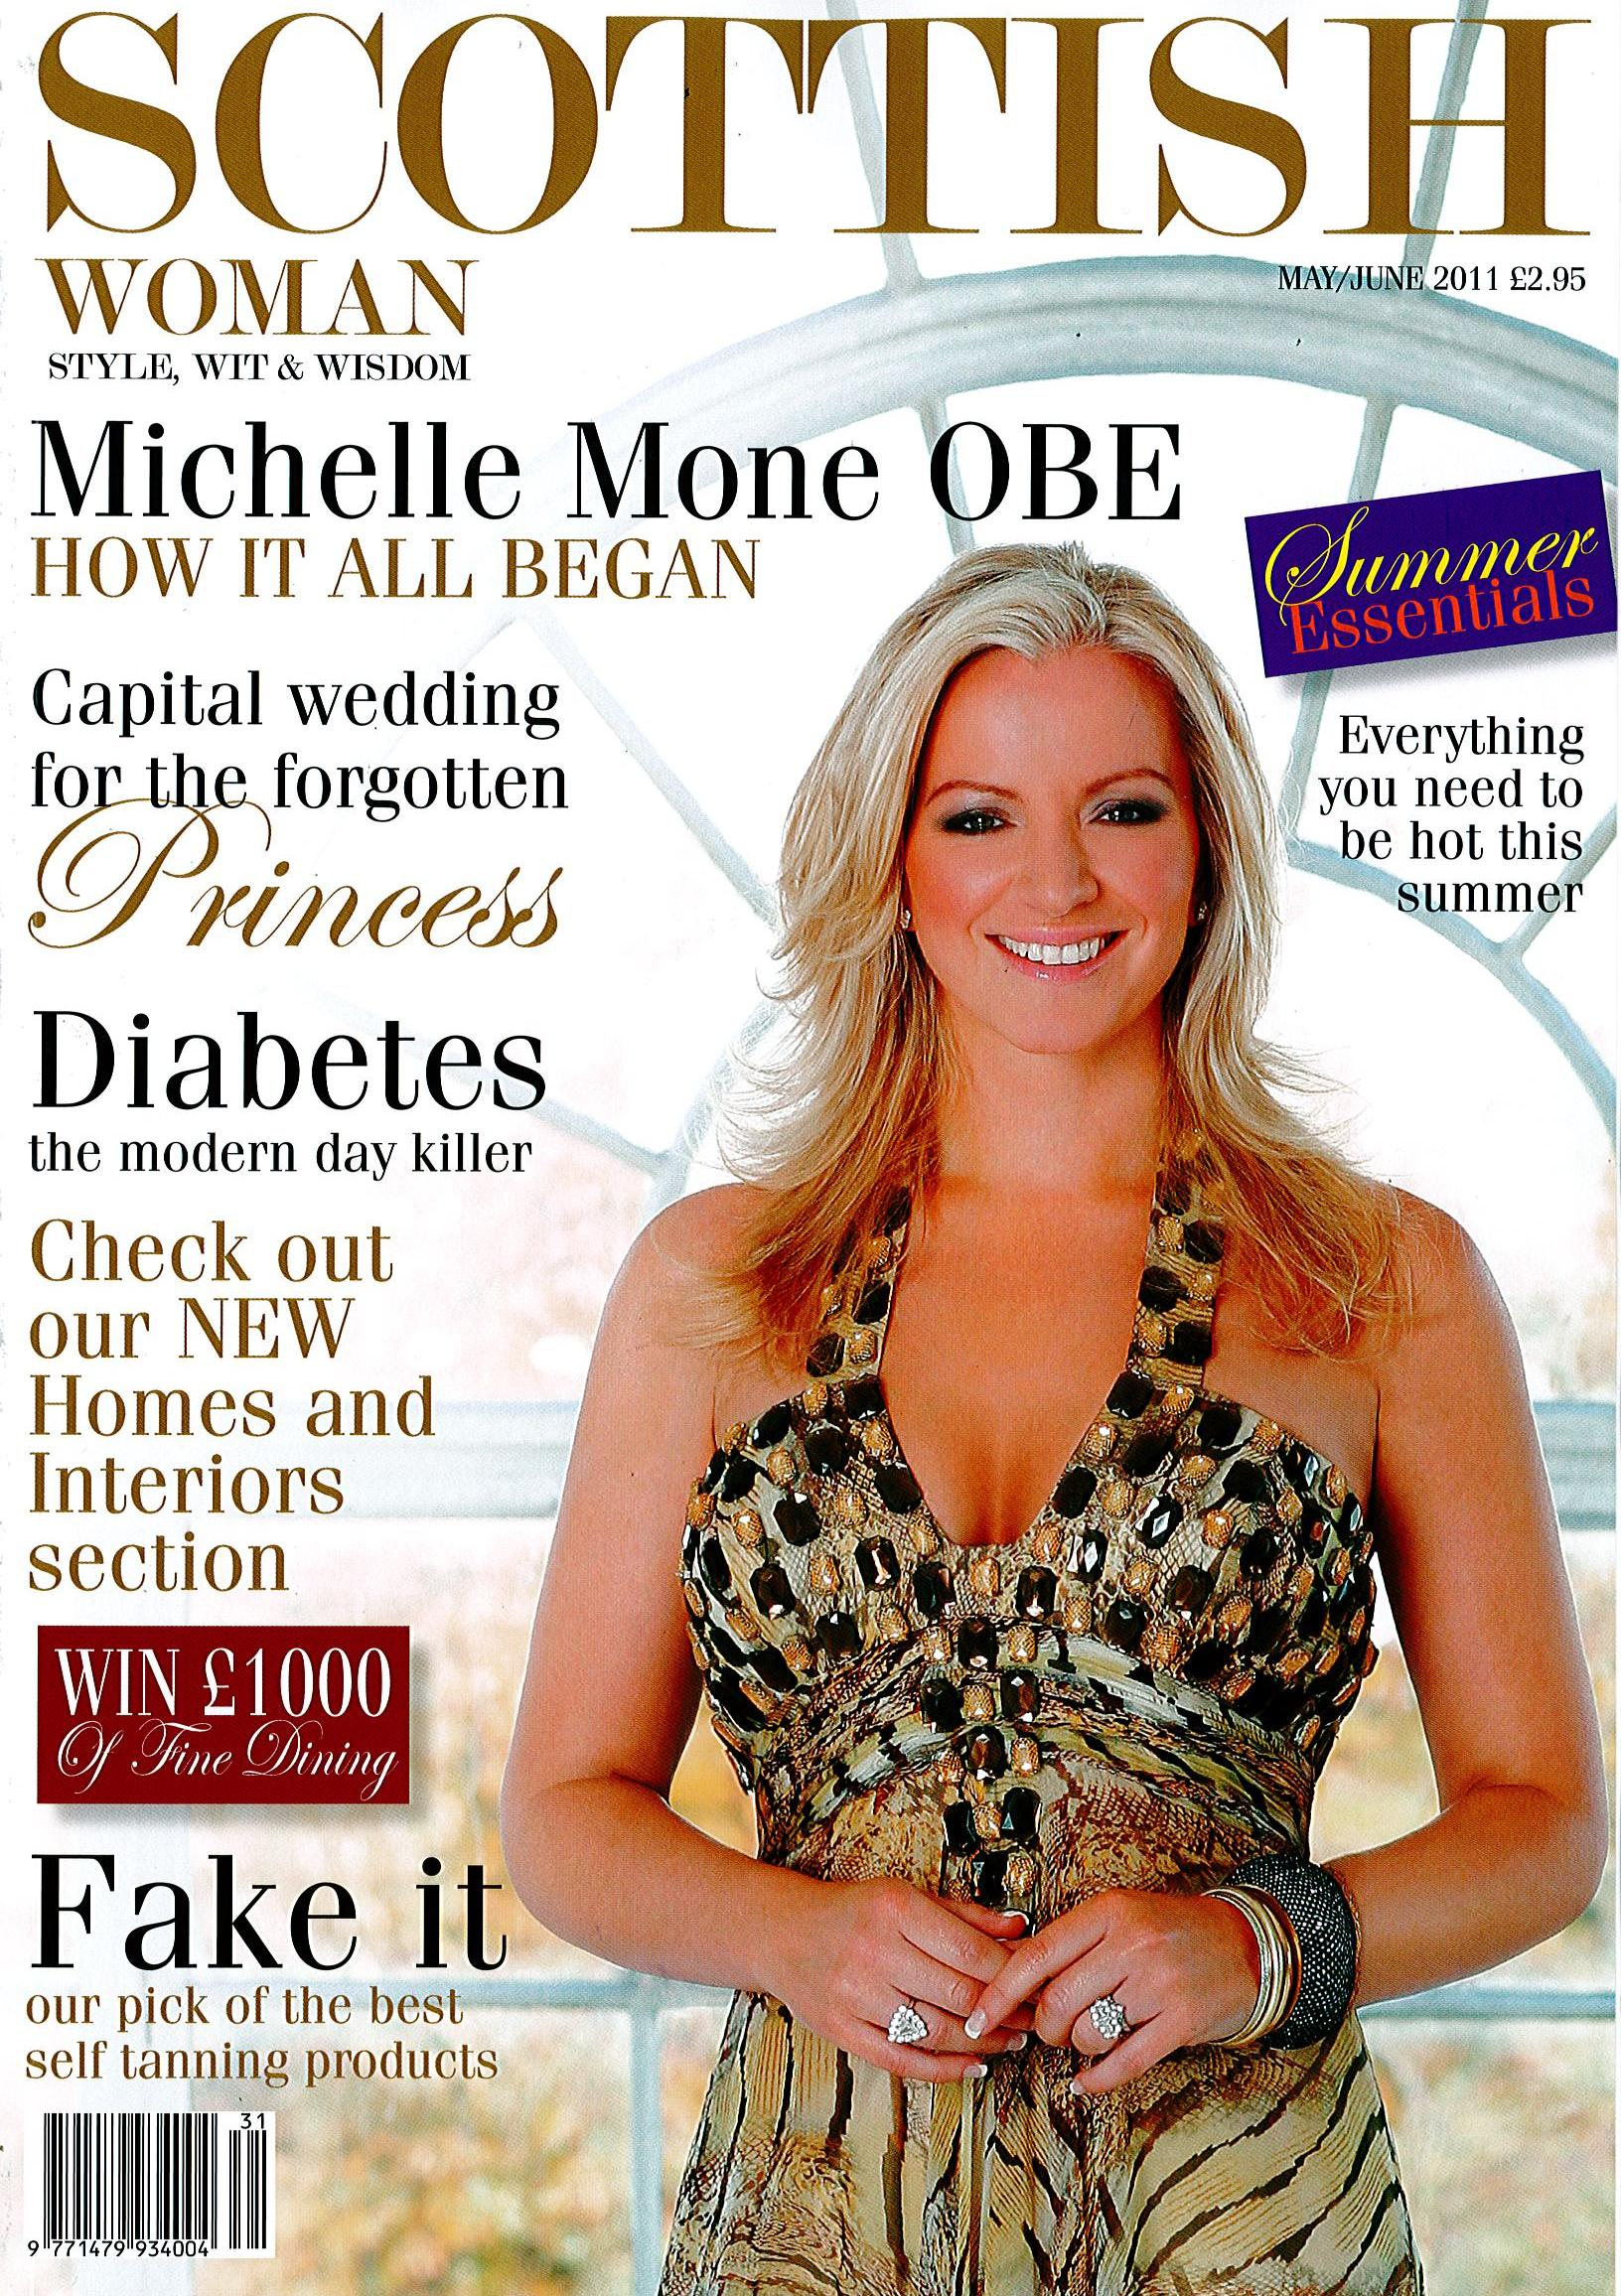 Scottish-Women-Magazine_Michelle-Mone-May-June-Issue-Front-Cover